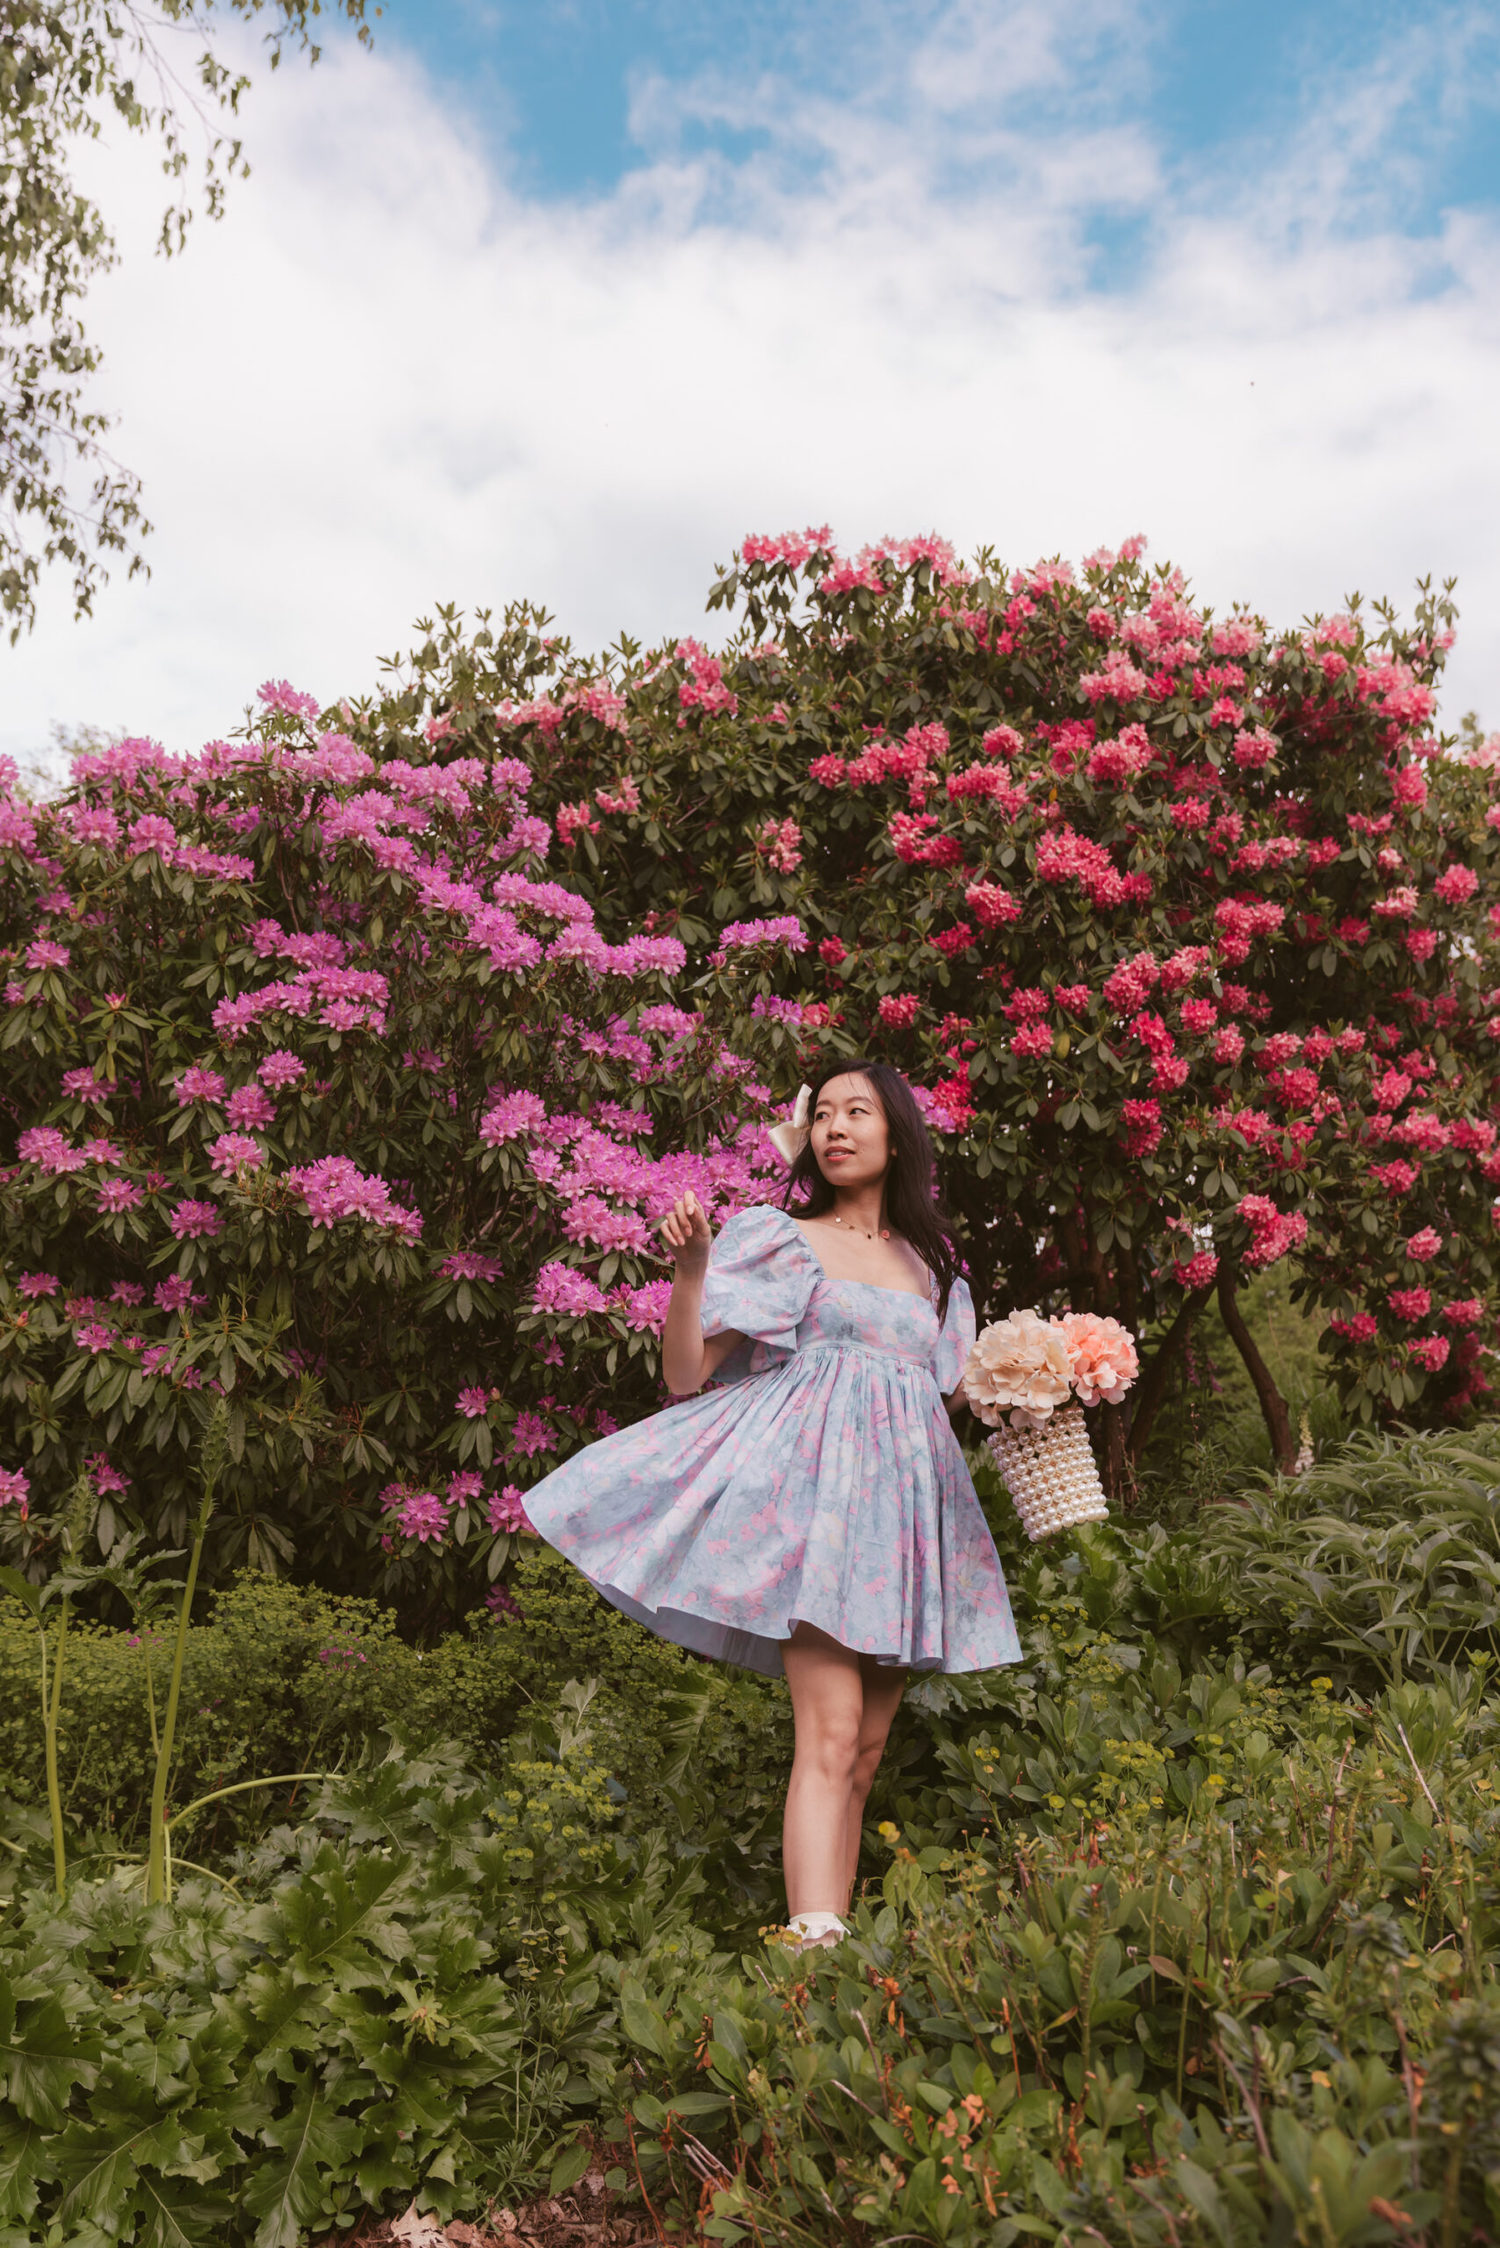 Girl with pastel dress in front of rhododendron flowers